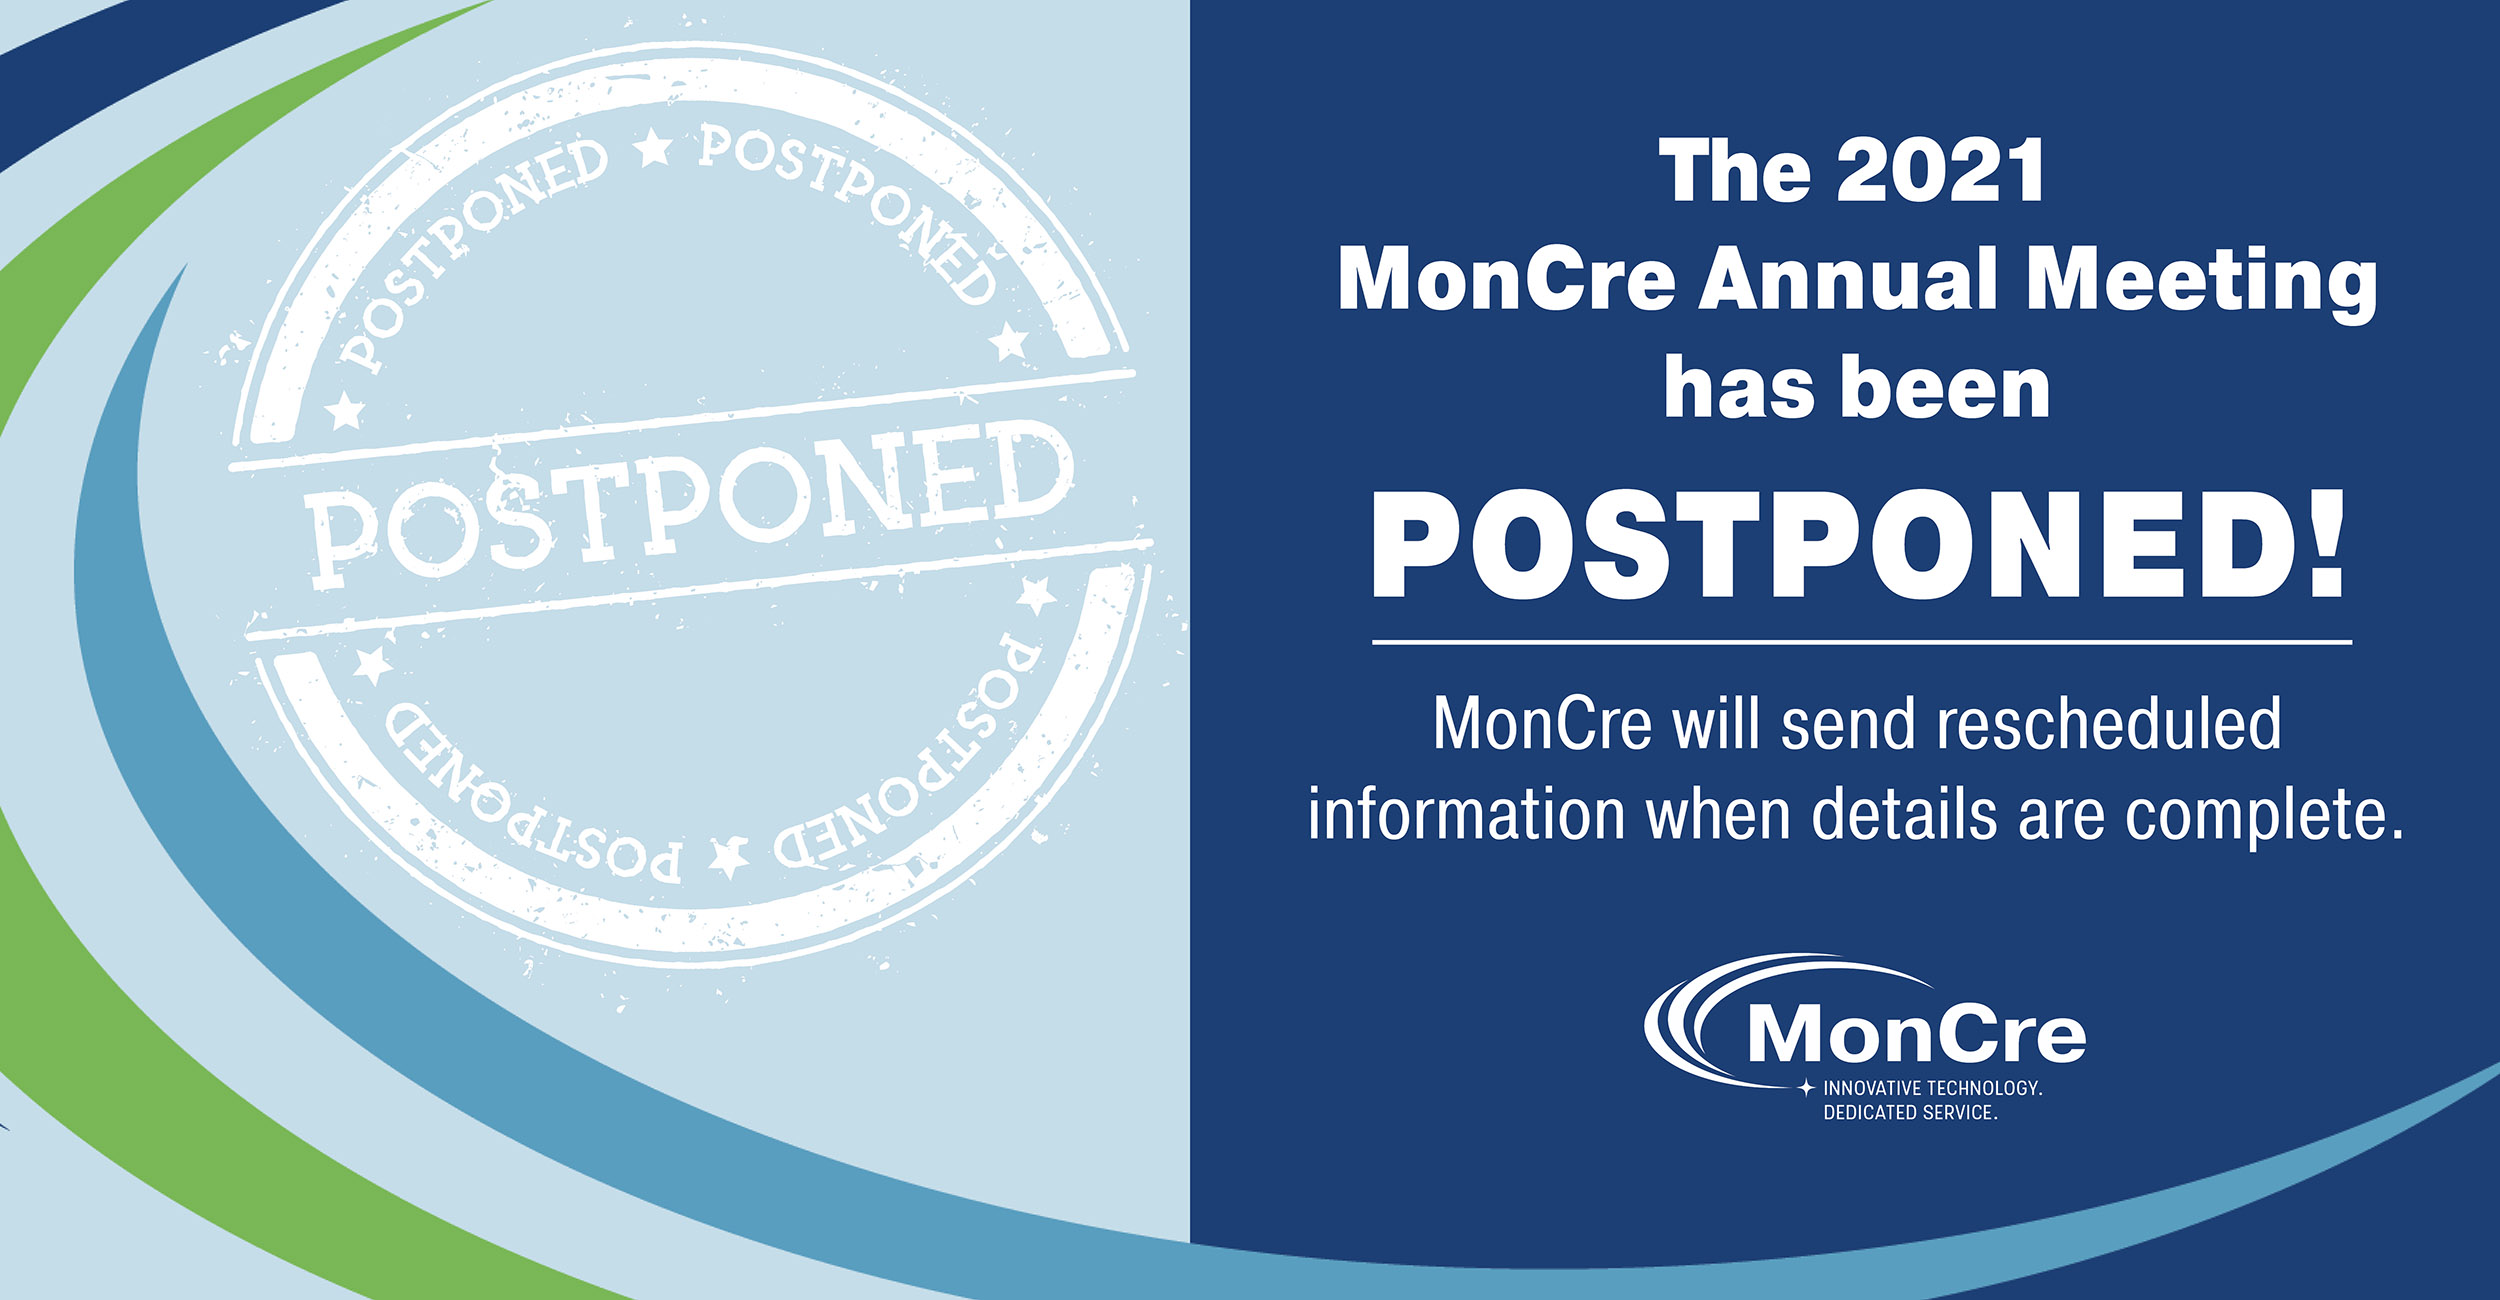 Postponed. The 2021 MonCre Annual Meeting has been postponed! MonCre will send rescheduled information when details are complete. MonCre. Innovative technology. Dedicated service.